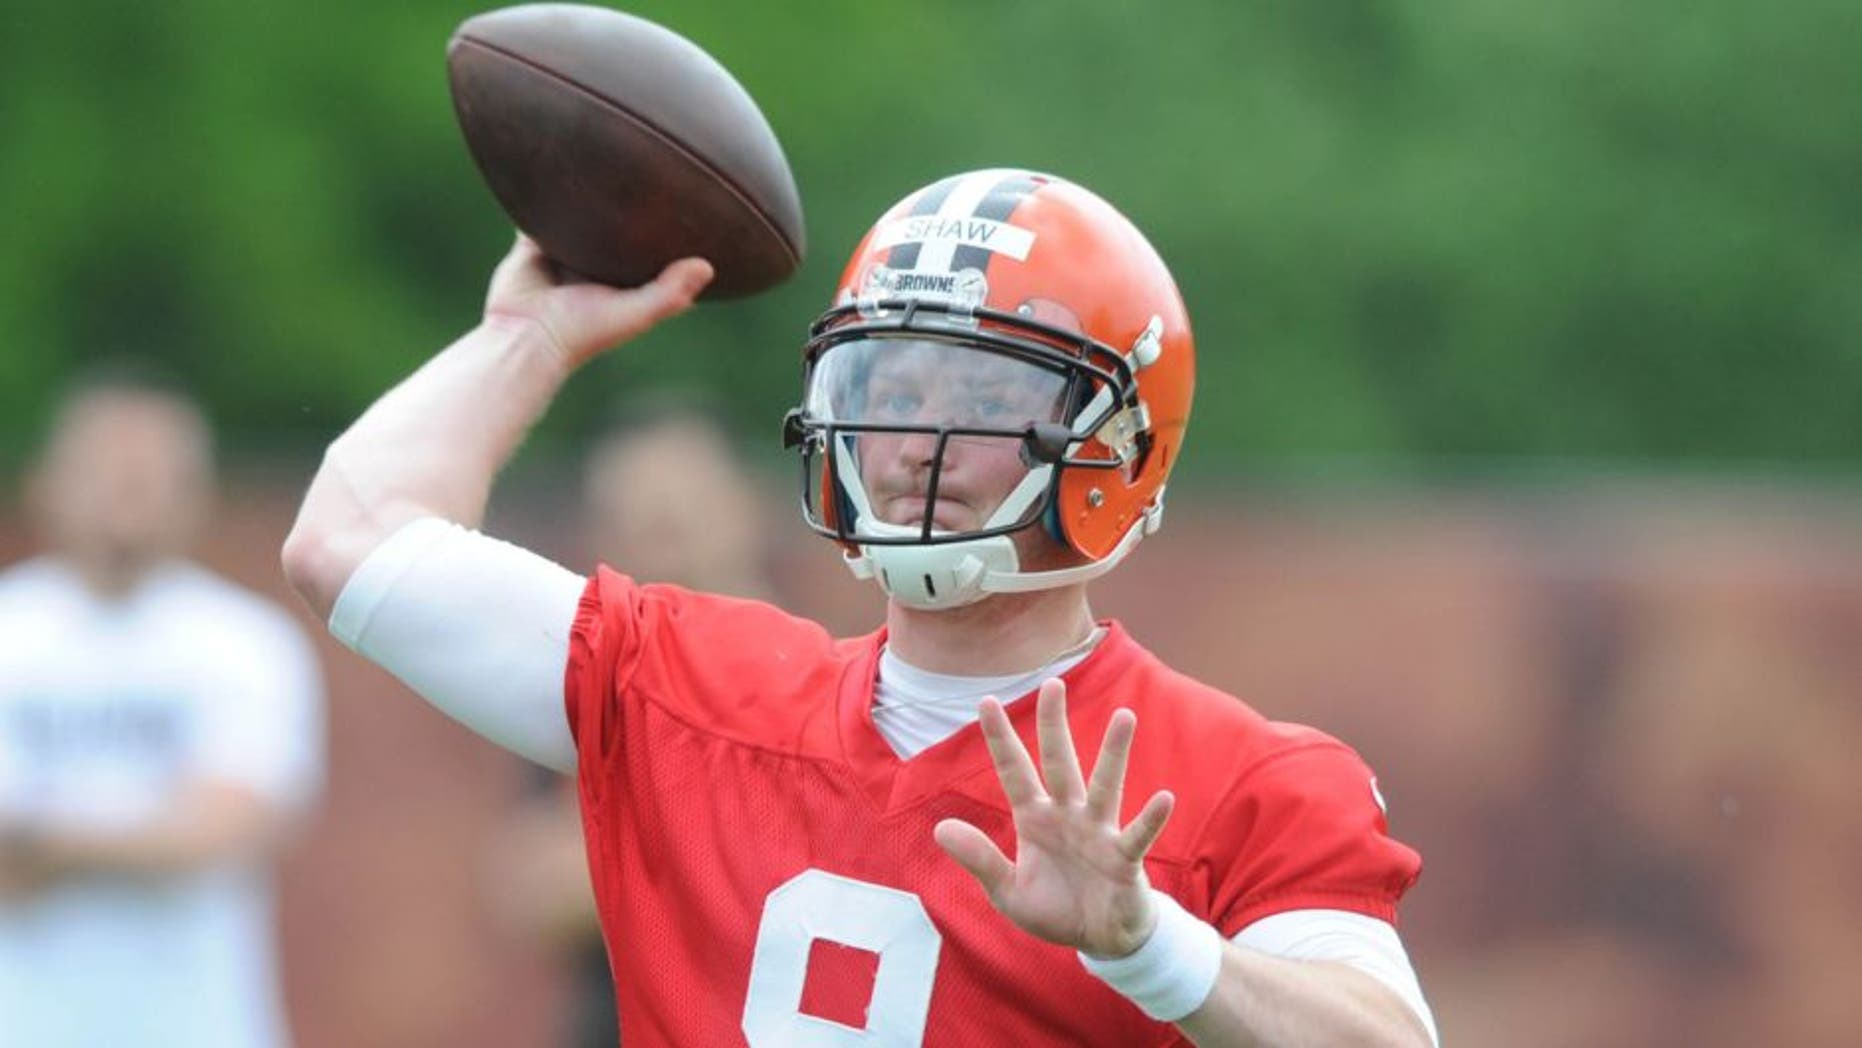 May 26, 2015; Berea, OH, USA; Cleveland Browns quarterback Connor Shaw (9) during organized team activities at the Cleveland Browns training facility. Mandatory Credit: Ken Blaze-USA TODAY Sports